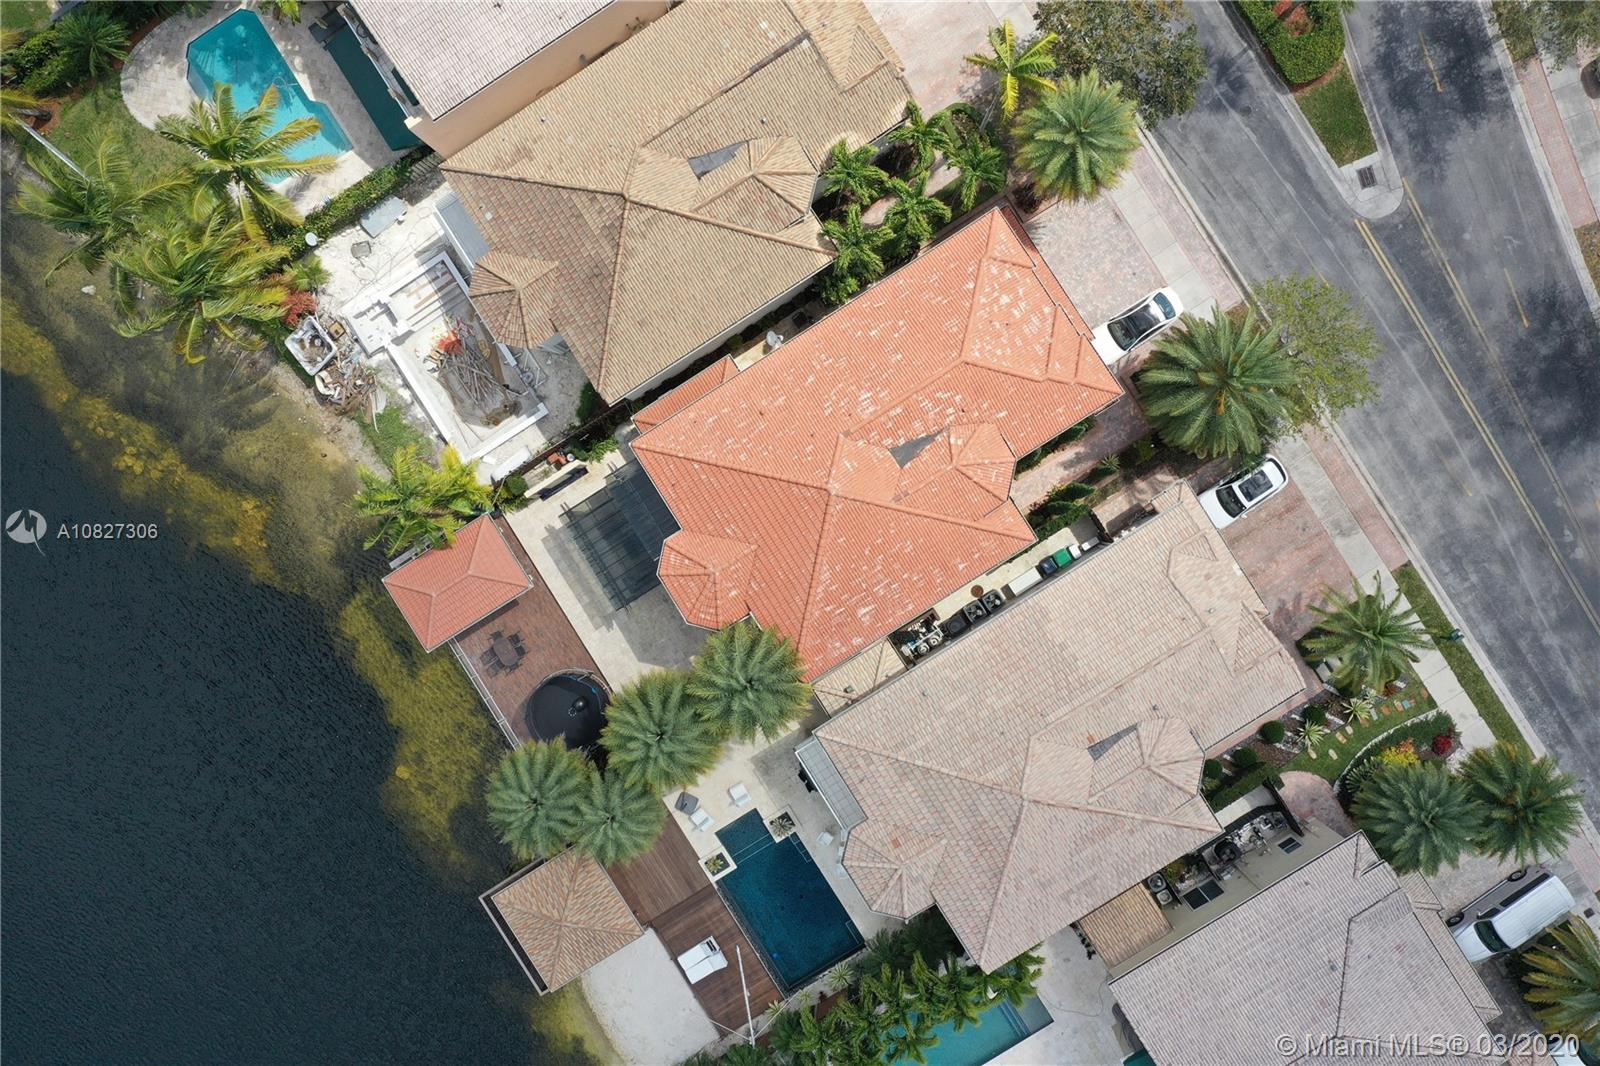 Doral Isles - 11073 NW 72nd Ter, Doral, FL 33178